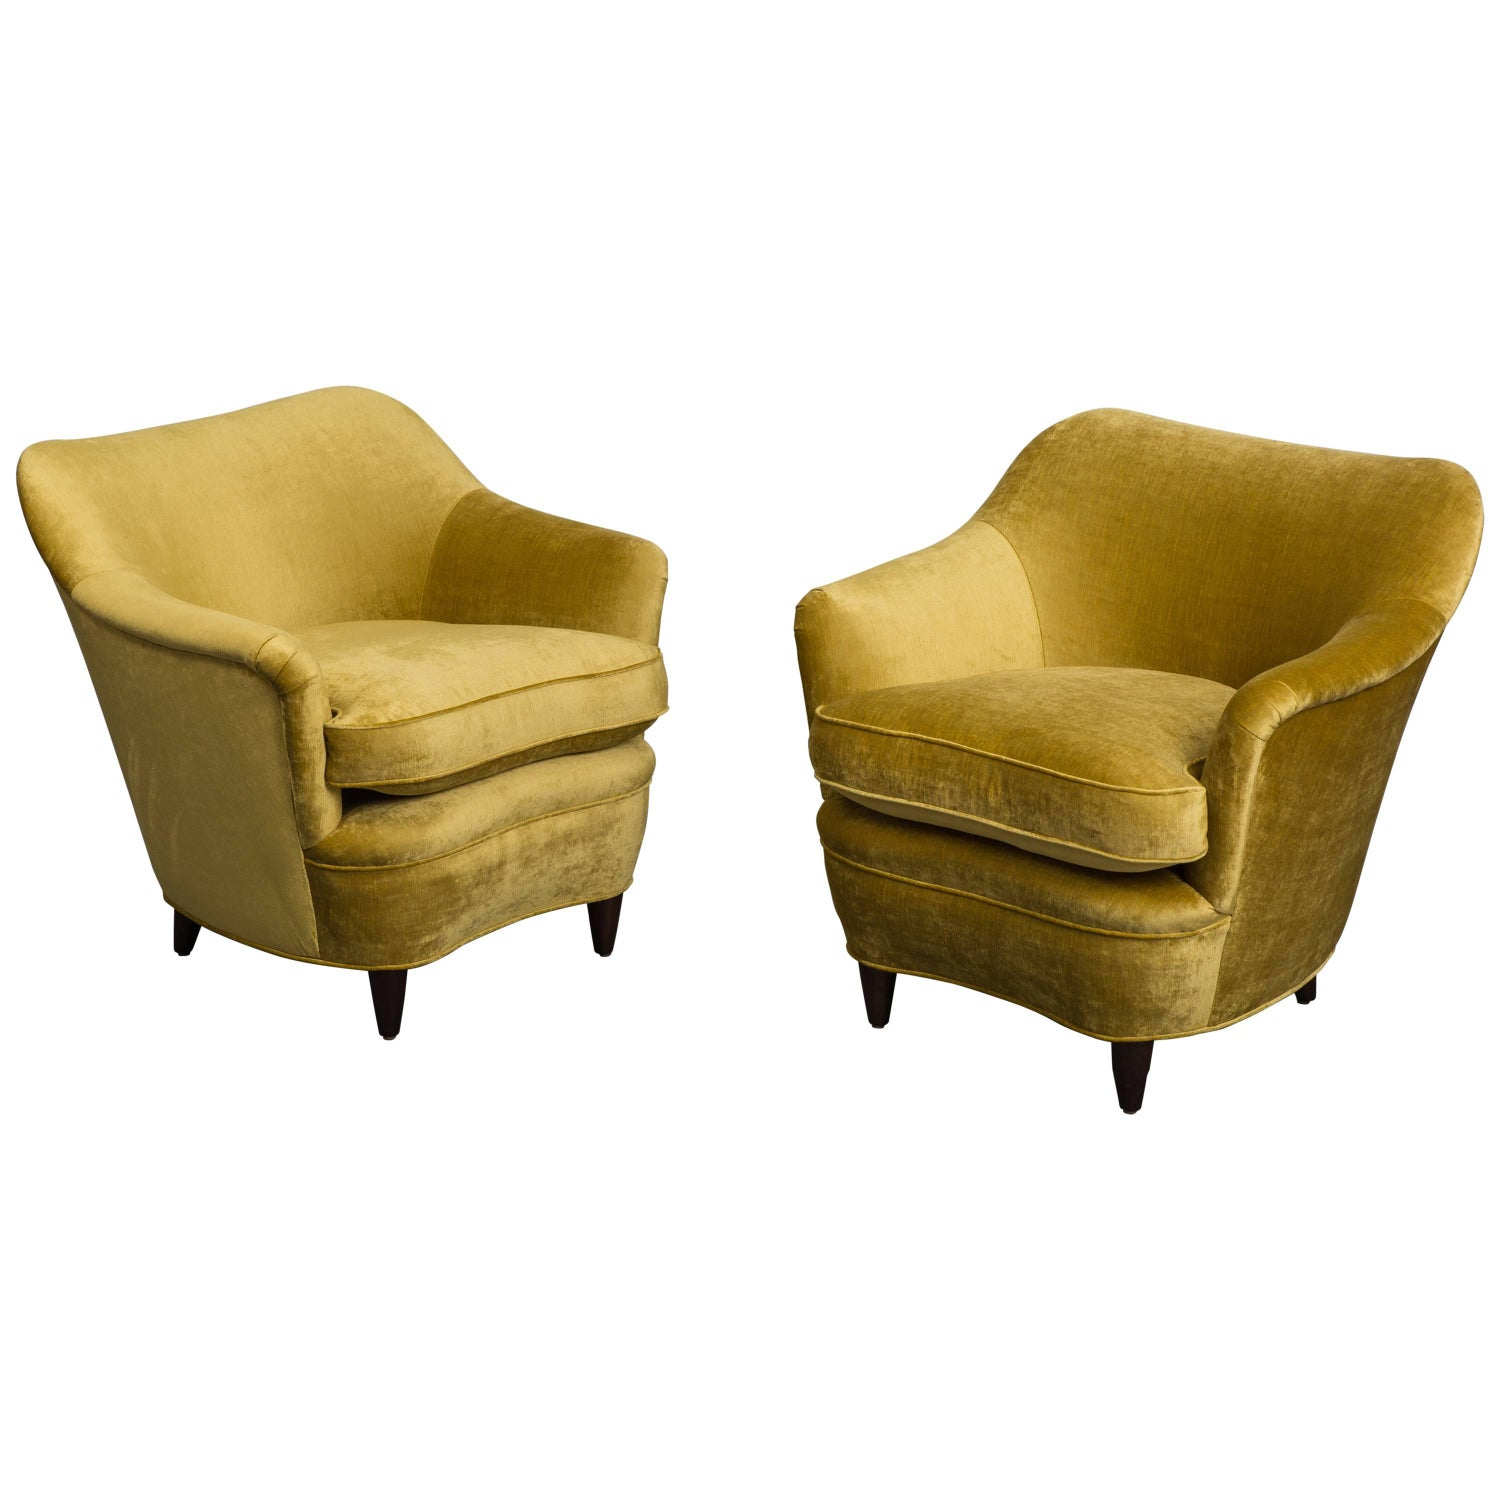 1930s lounge chairs 334 for sale at 1stdibs